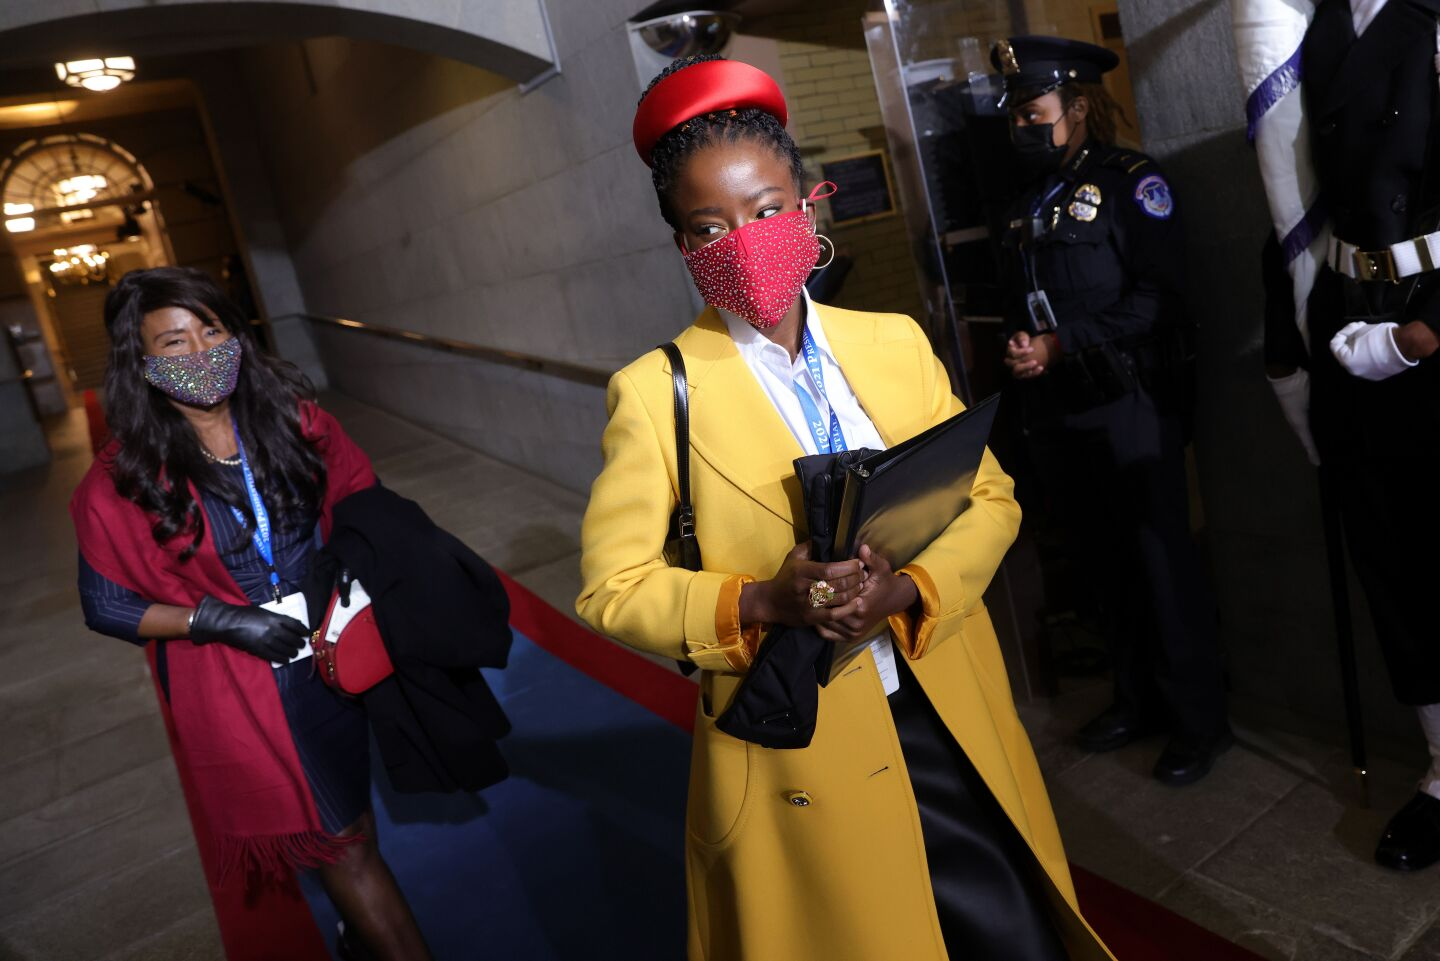 National youth poet laureate Amanda Gorman arrives at the inauguration of US President-elect Joe Biden on the West Front of the US Capitol on January 20, 2021 in Washington, DC.